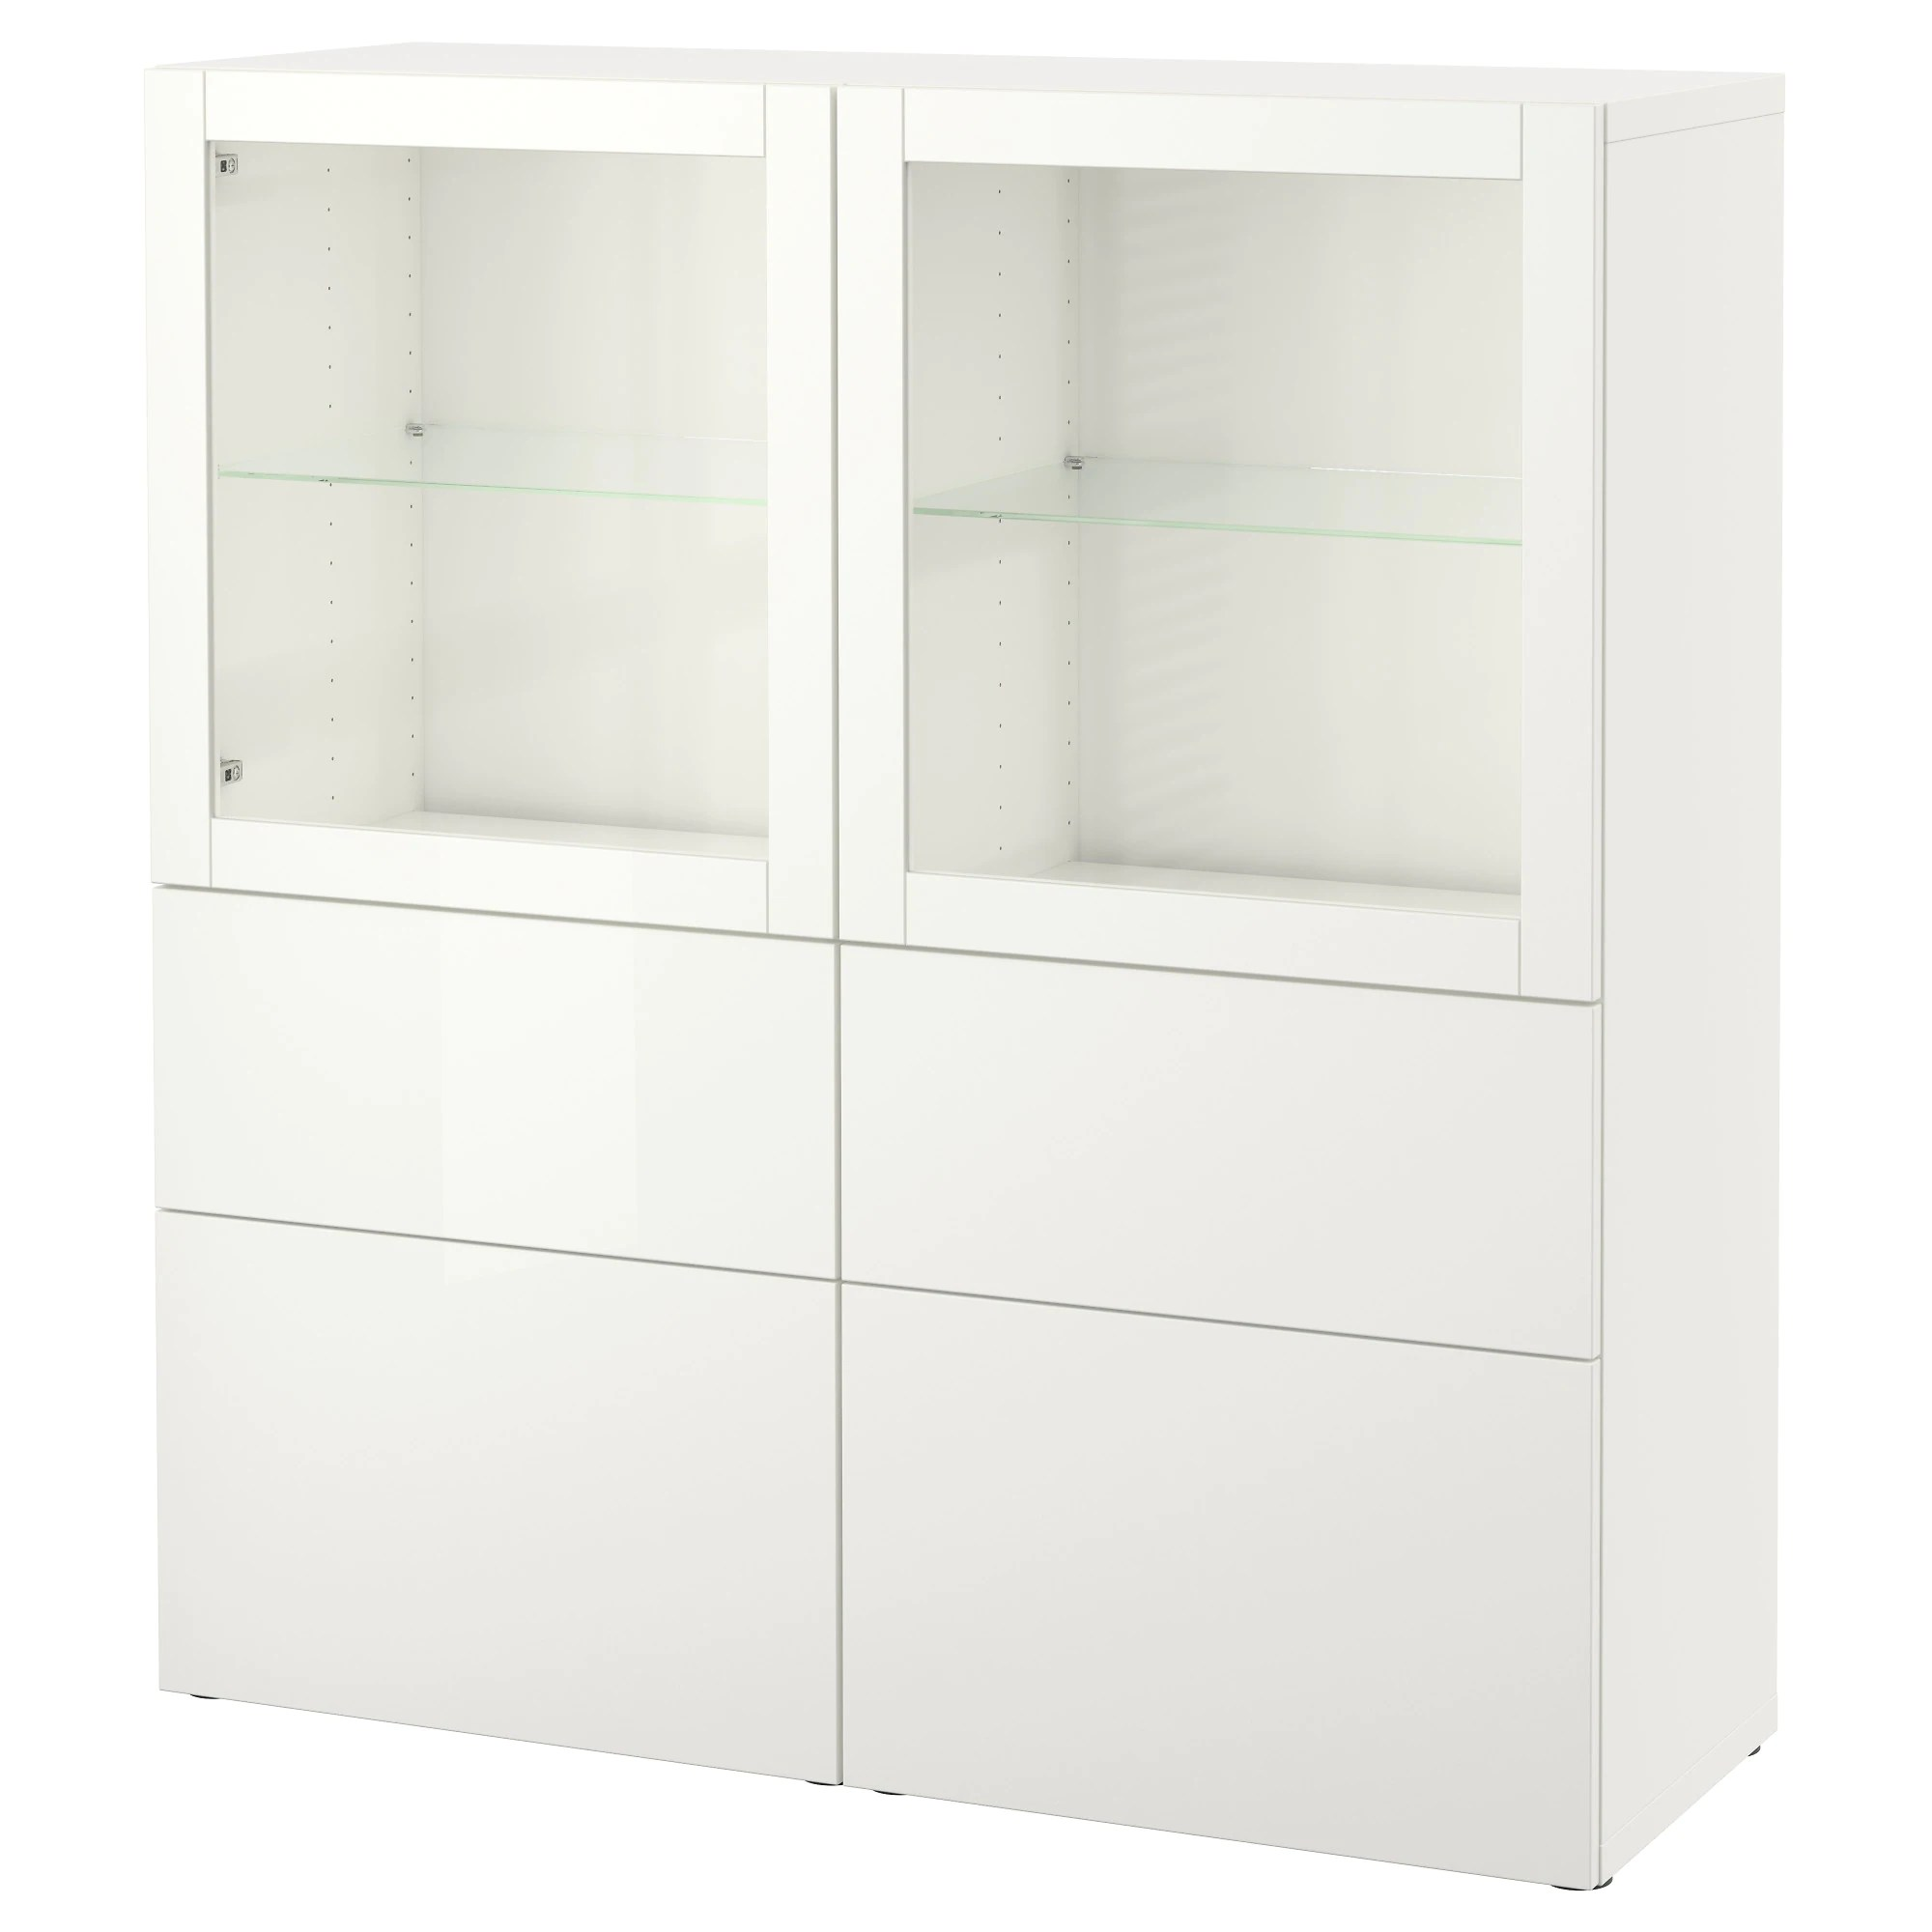 Ikea System BestÅ Storage Combination W Glass Doors Lappviken Sindvik White Clear Glass